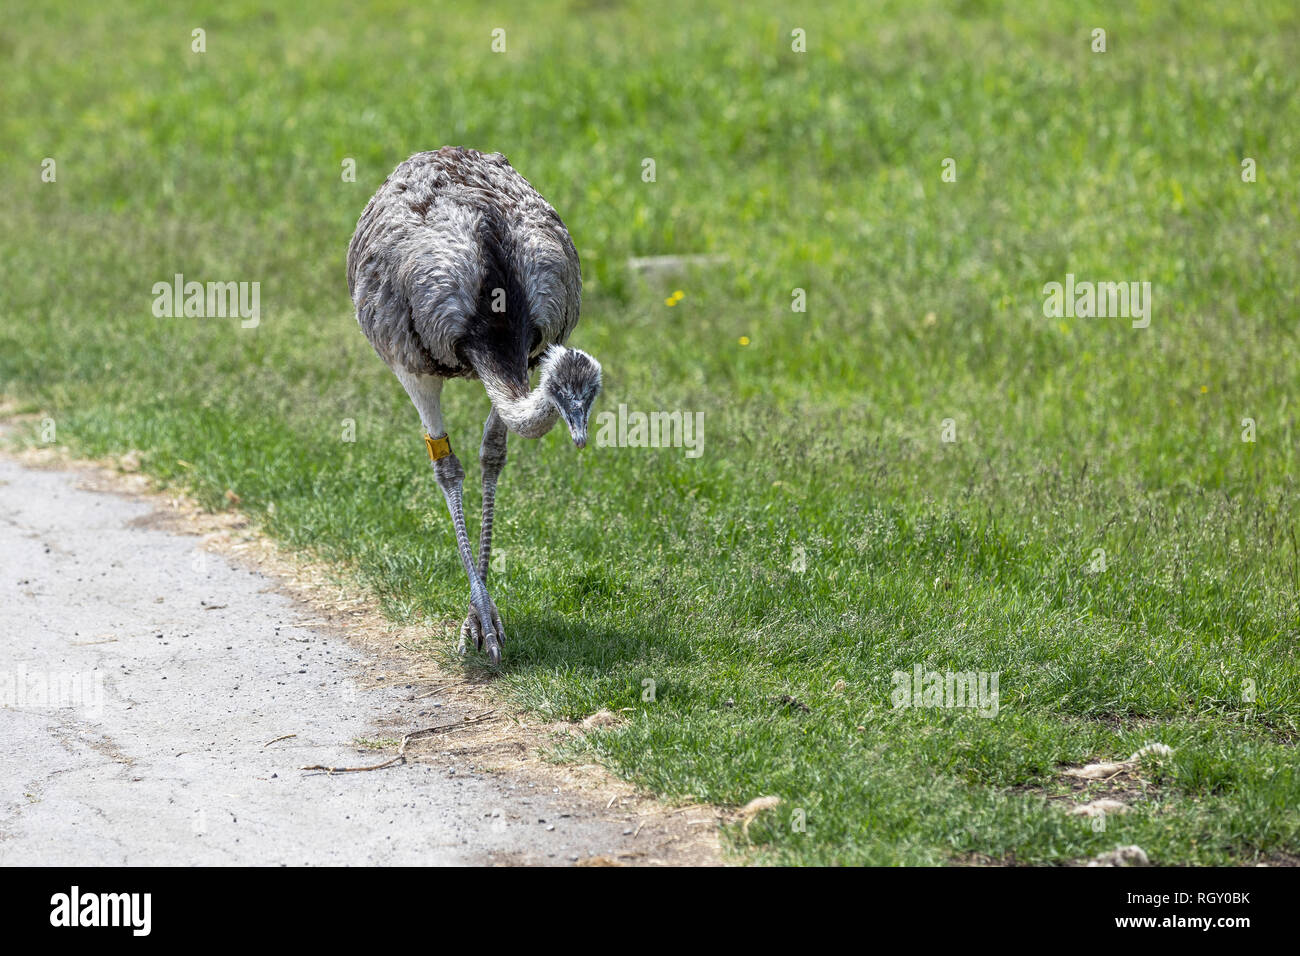 Rhea bird walking aside the road on a green background Stock Photo